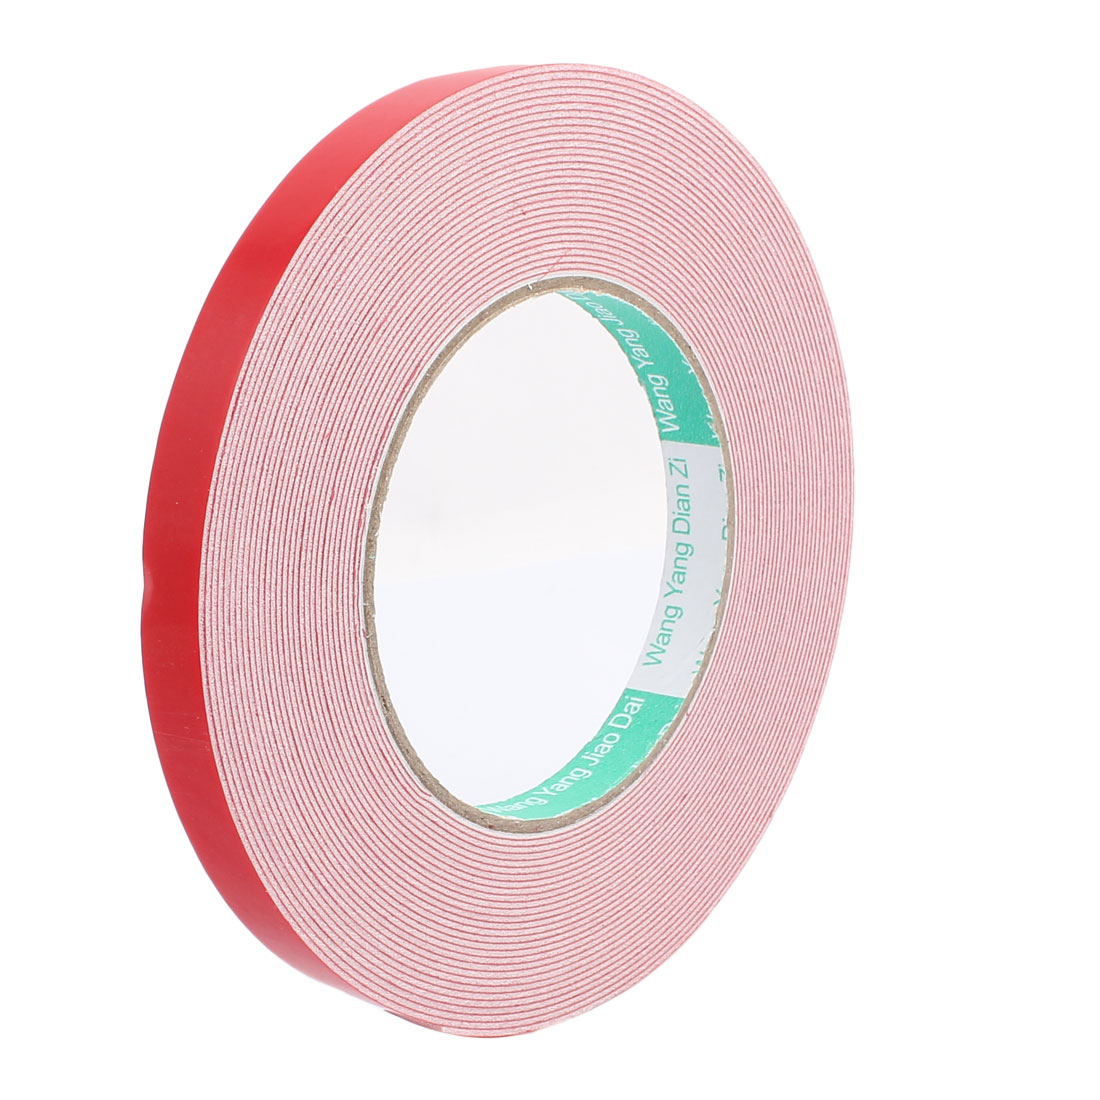 10M 12mm x 1mm Double-side Adhesive Shockproof Sponge EVA Tape Red White